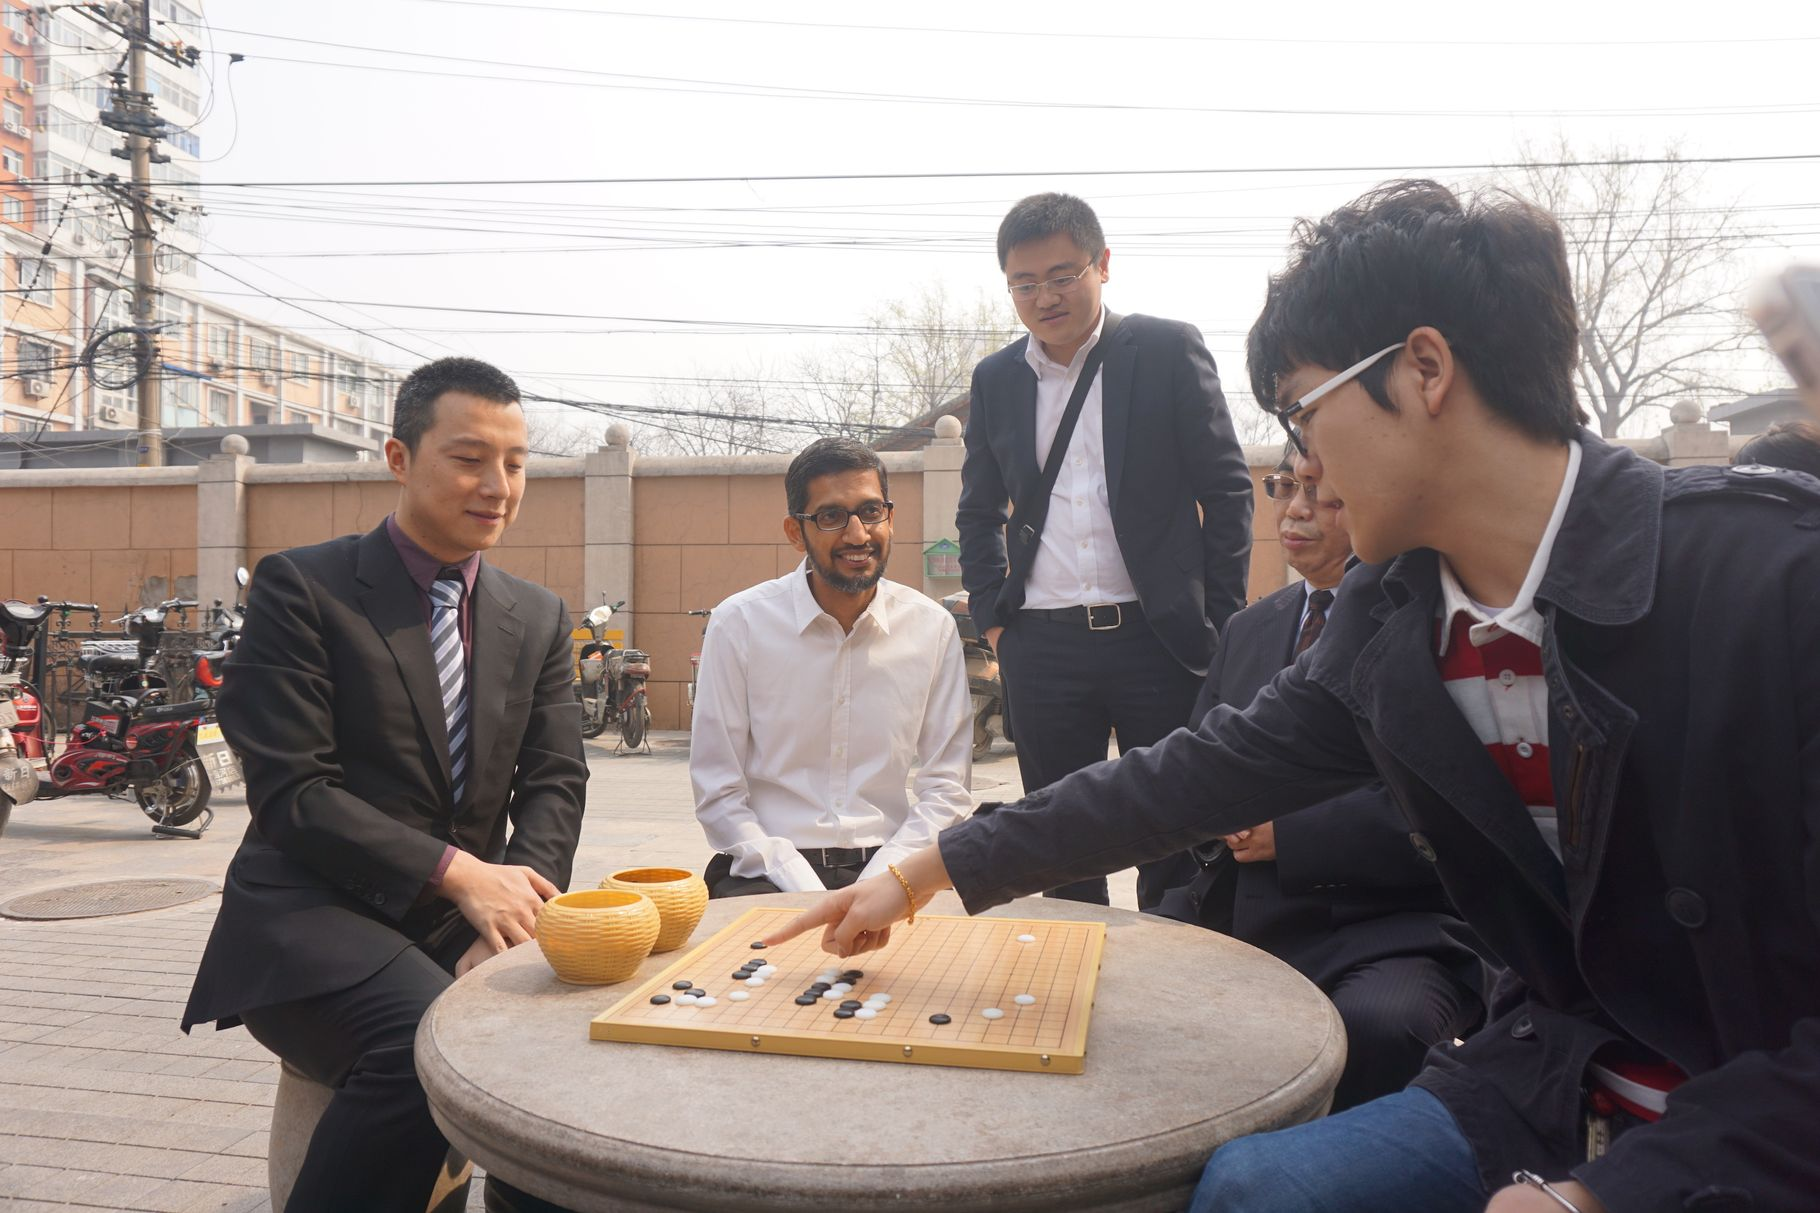 Google's AlphaGo takes on Chinese Go master in best of 3 matches